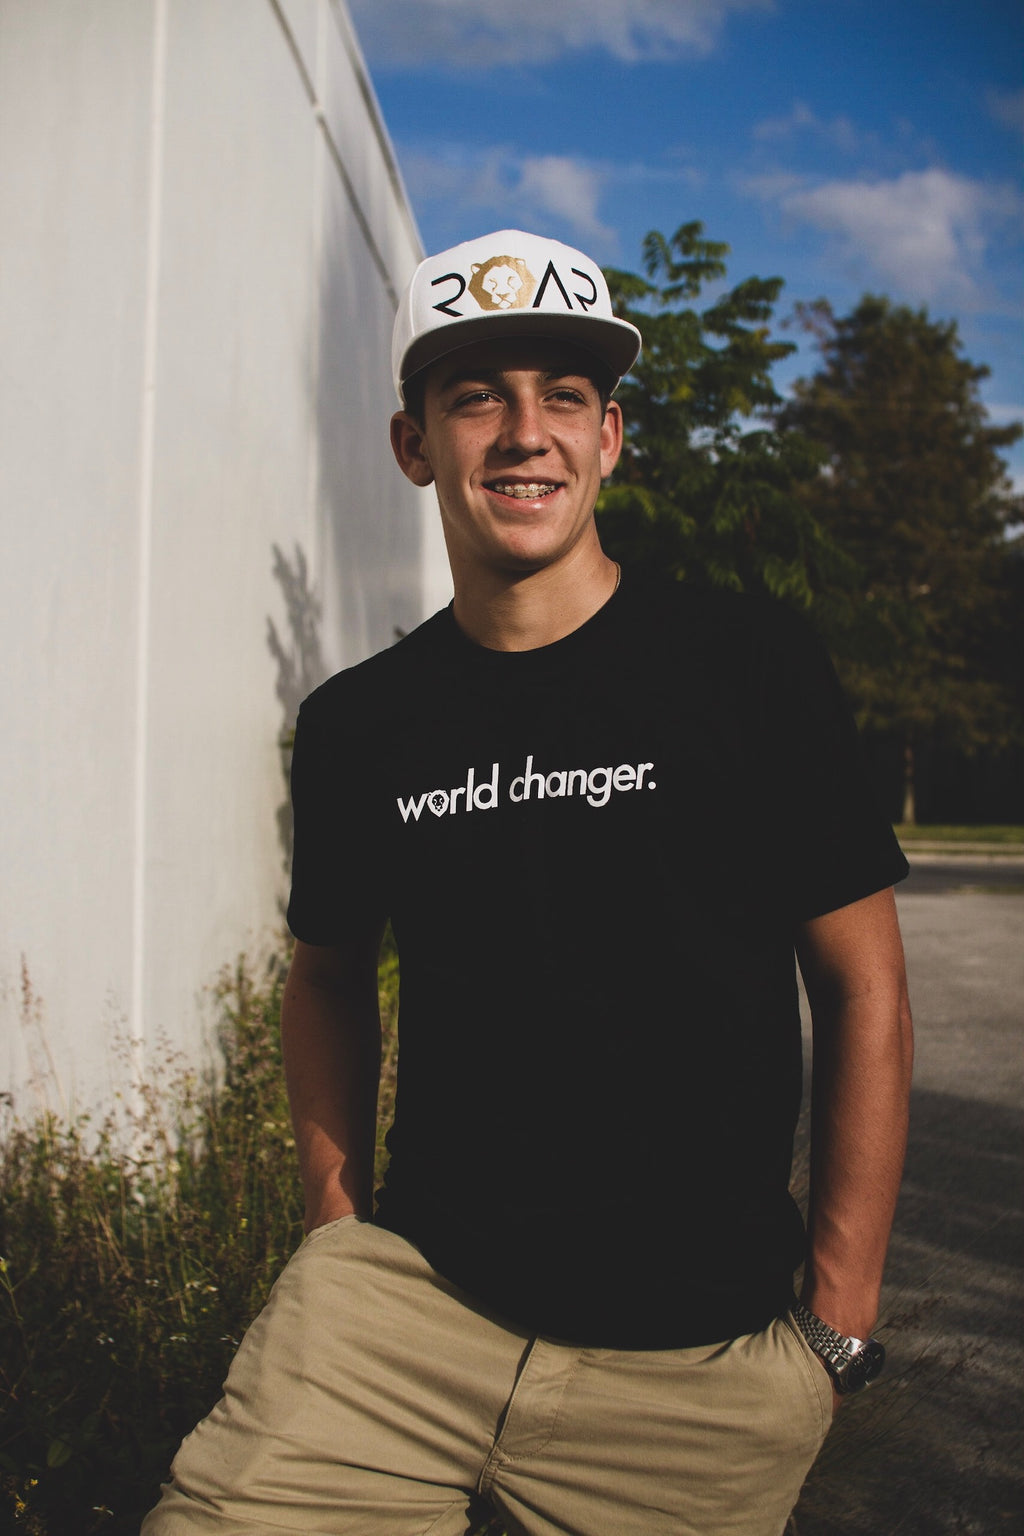 WORLD CHANGER - KIDS AND YOUNG ADULTS T-SHIRT *OPTIONAL COMBO ADD-ON WITH LIMITED EDITION MAX-ROAR FLATBILL